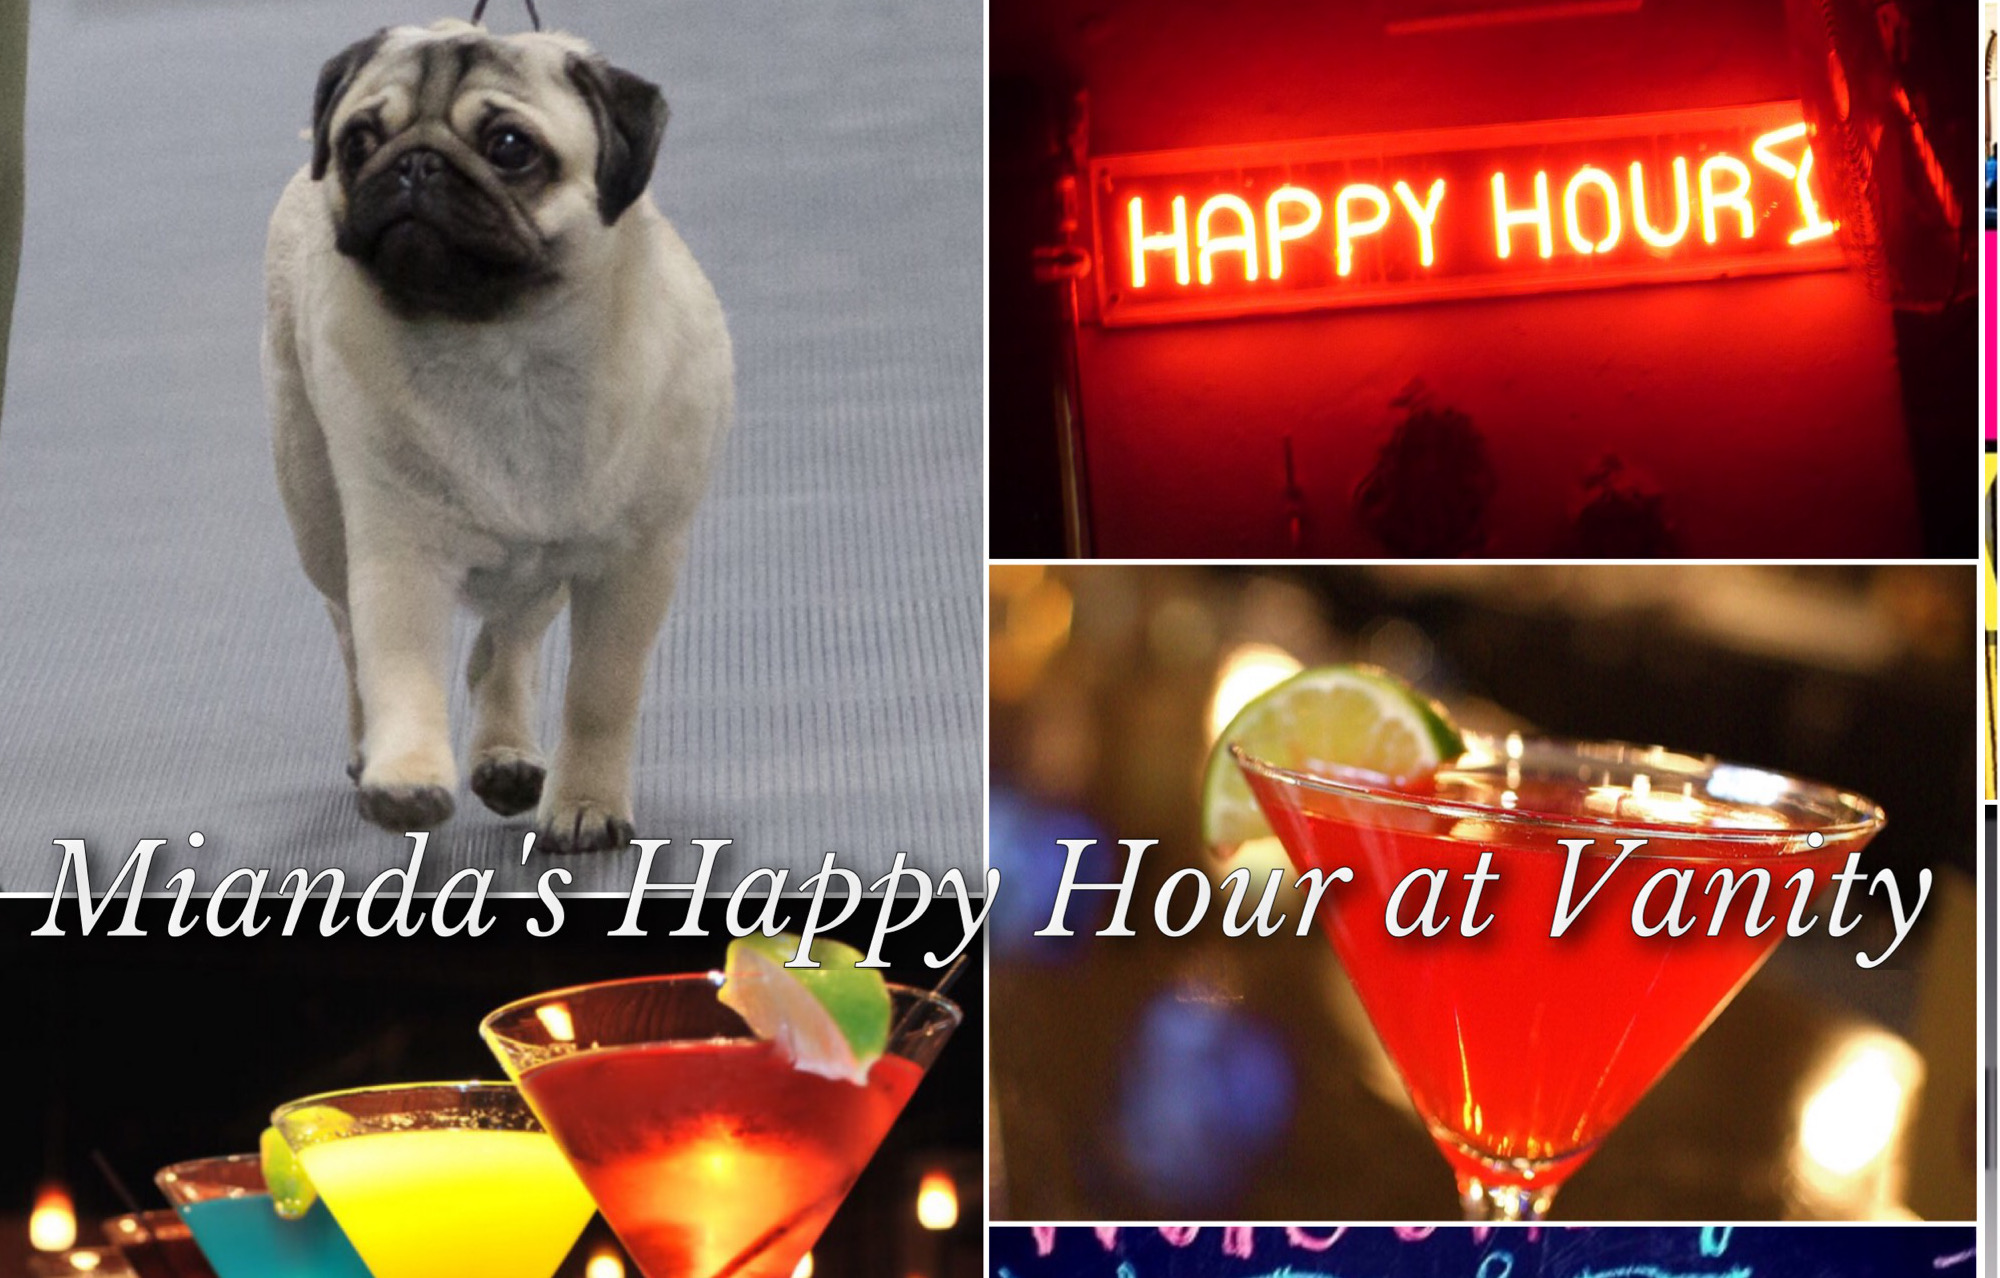 Vanity Pugs Martini collage